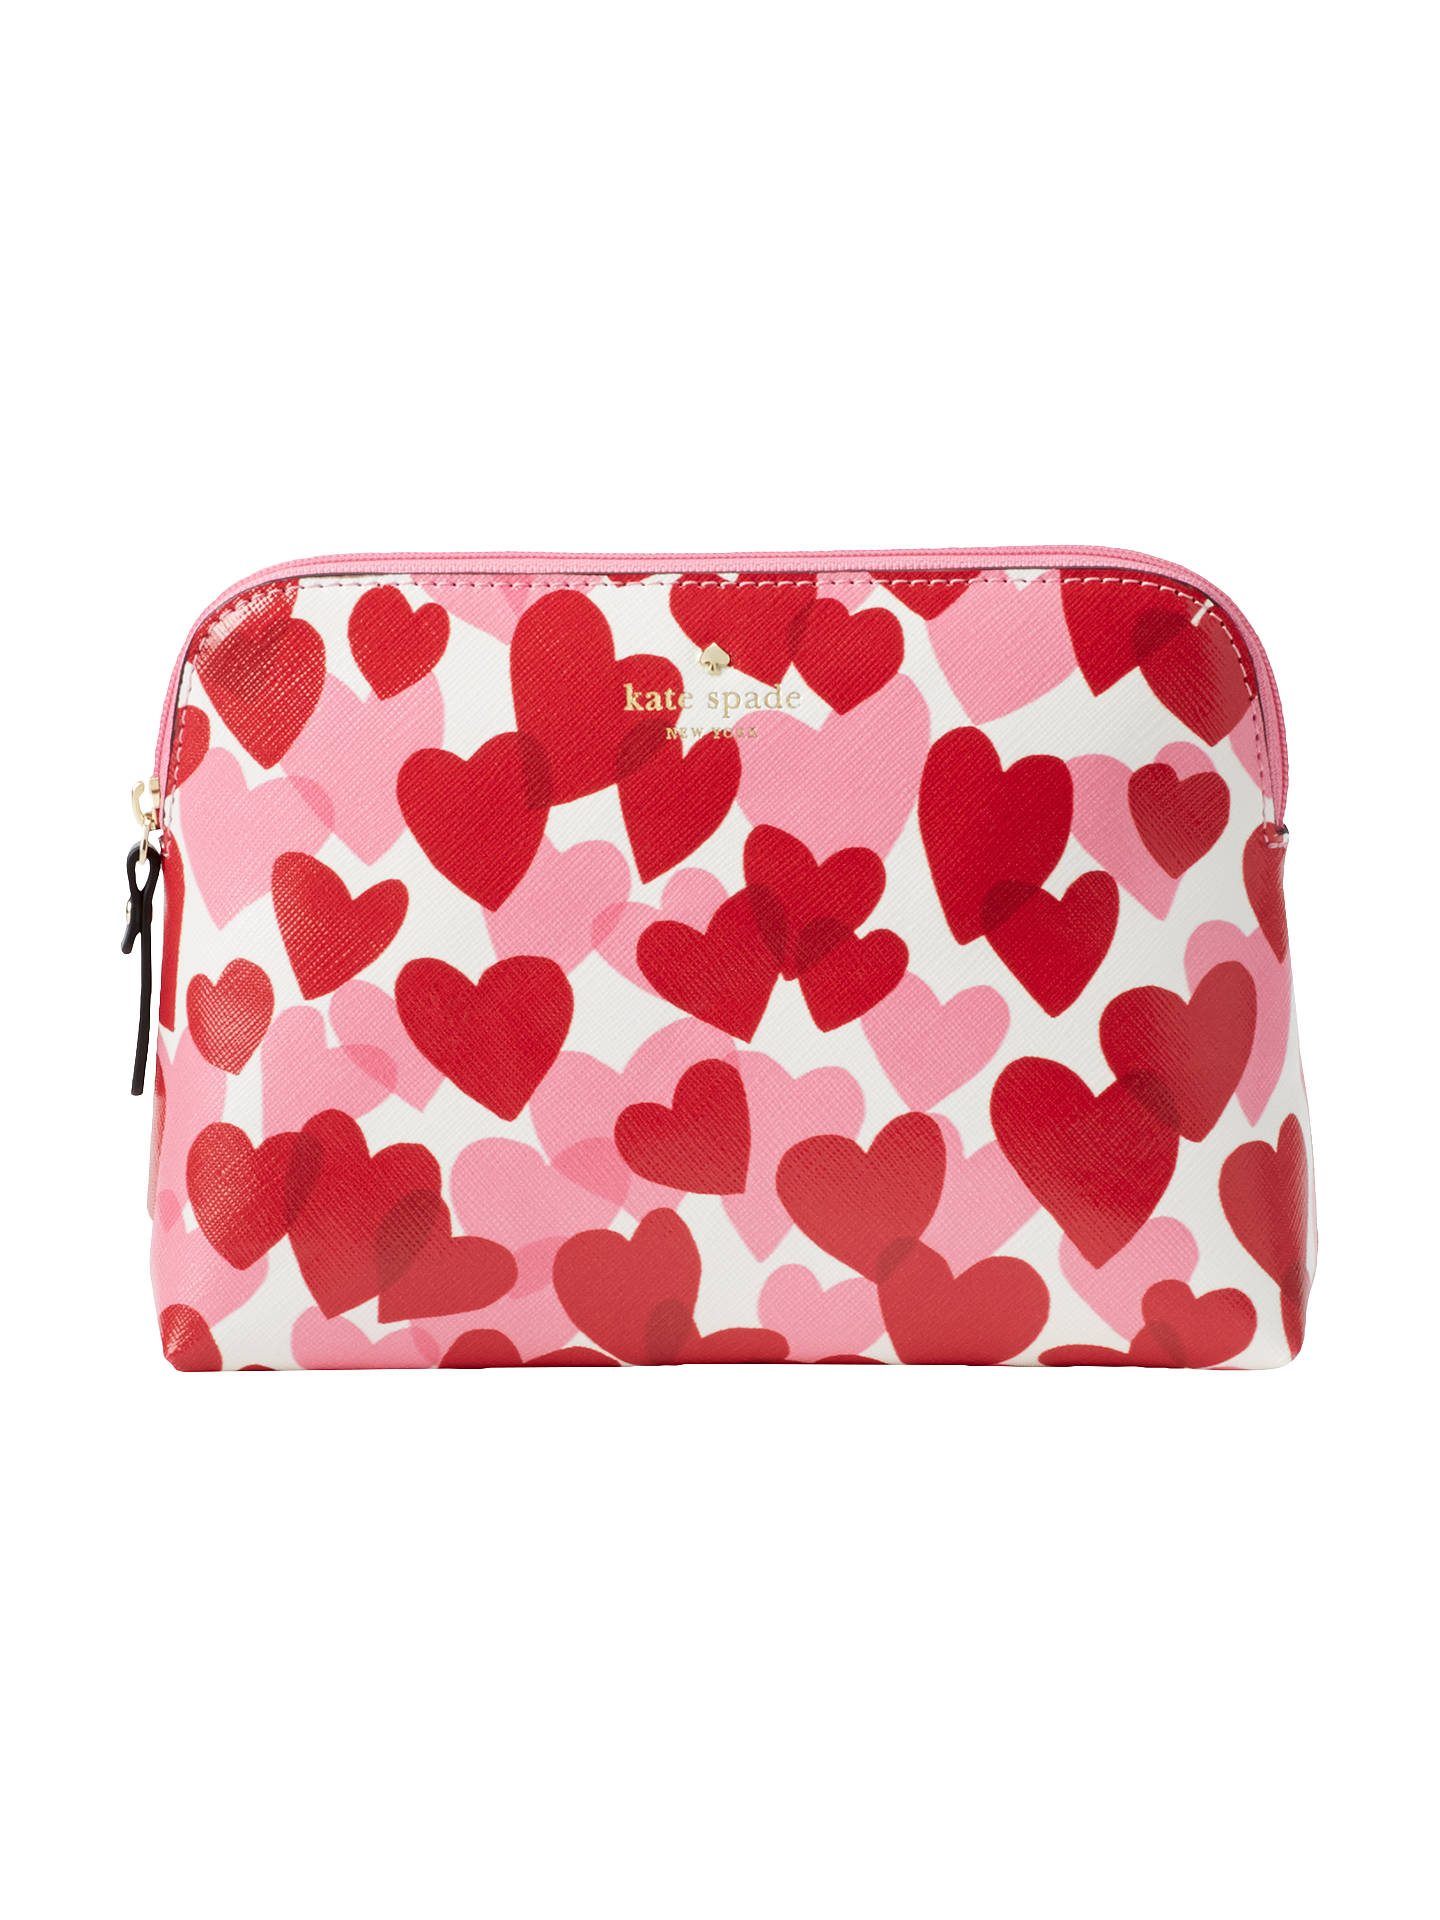 best website 0f472 eca99 kate spade new york Yours Truly Cosmetic Bag, Heart Party at John ...